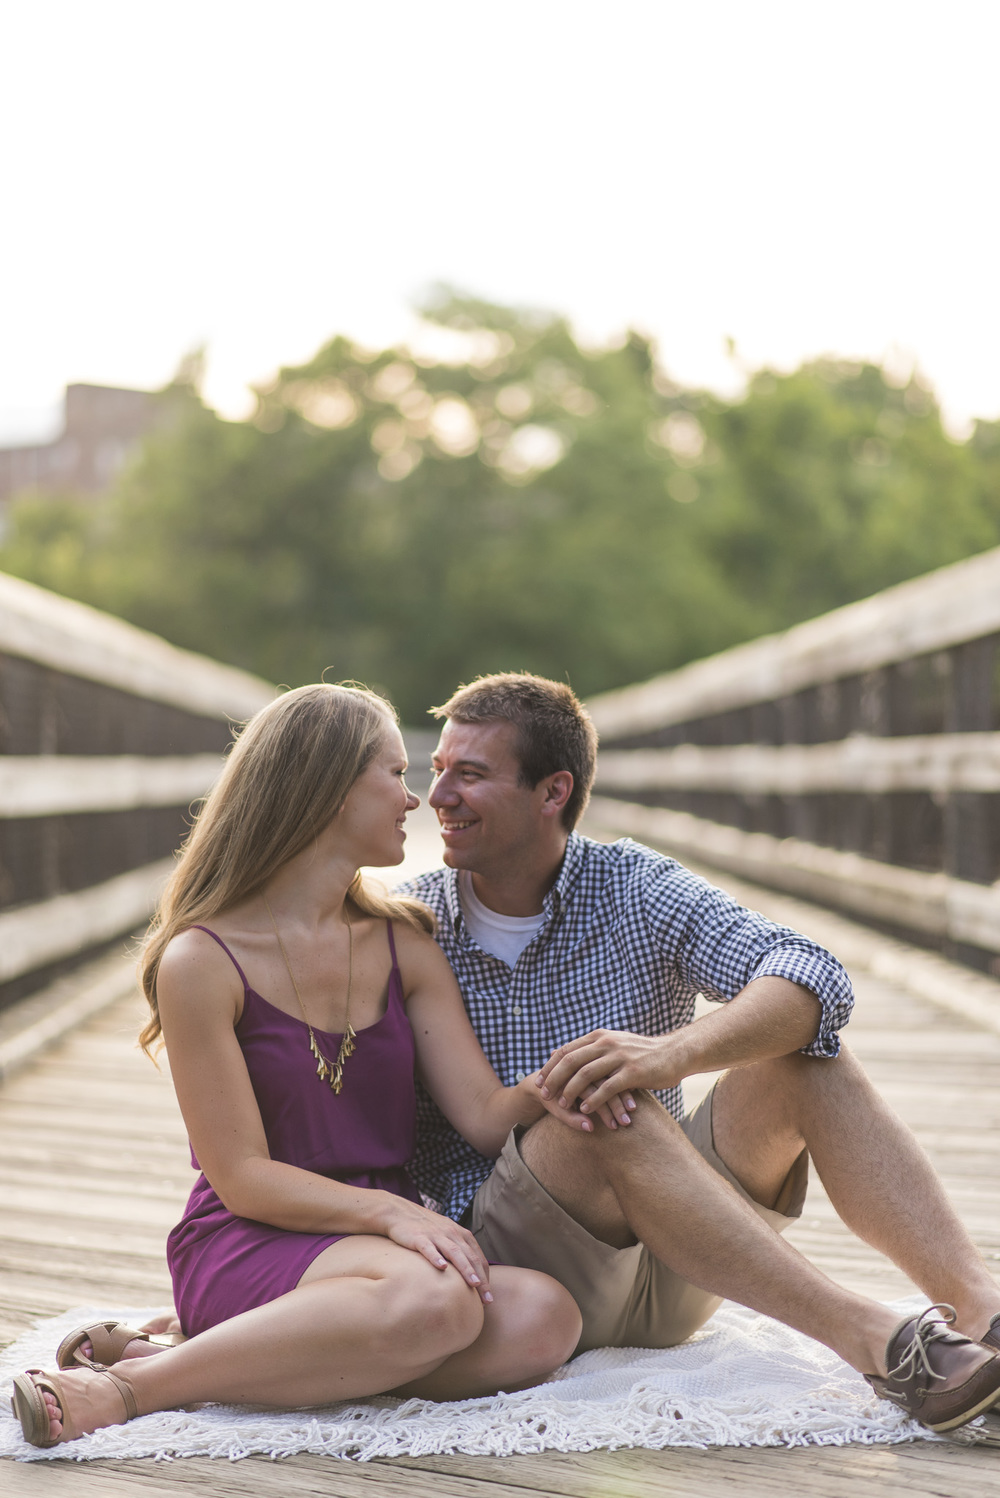 Downtown_Lynchburg_VA_craddock_Terry_Water_Fountain_Engagement_Session_Photos287.jpg